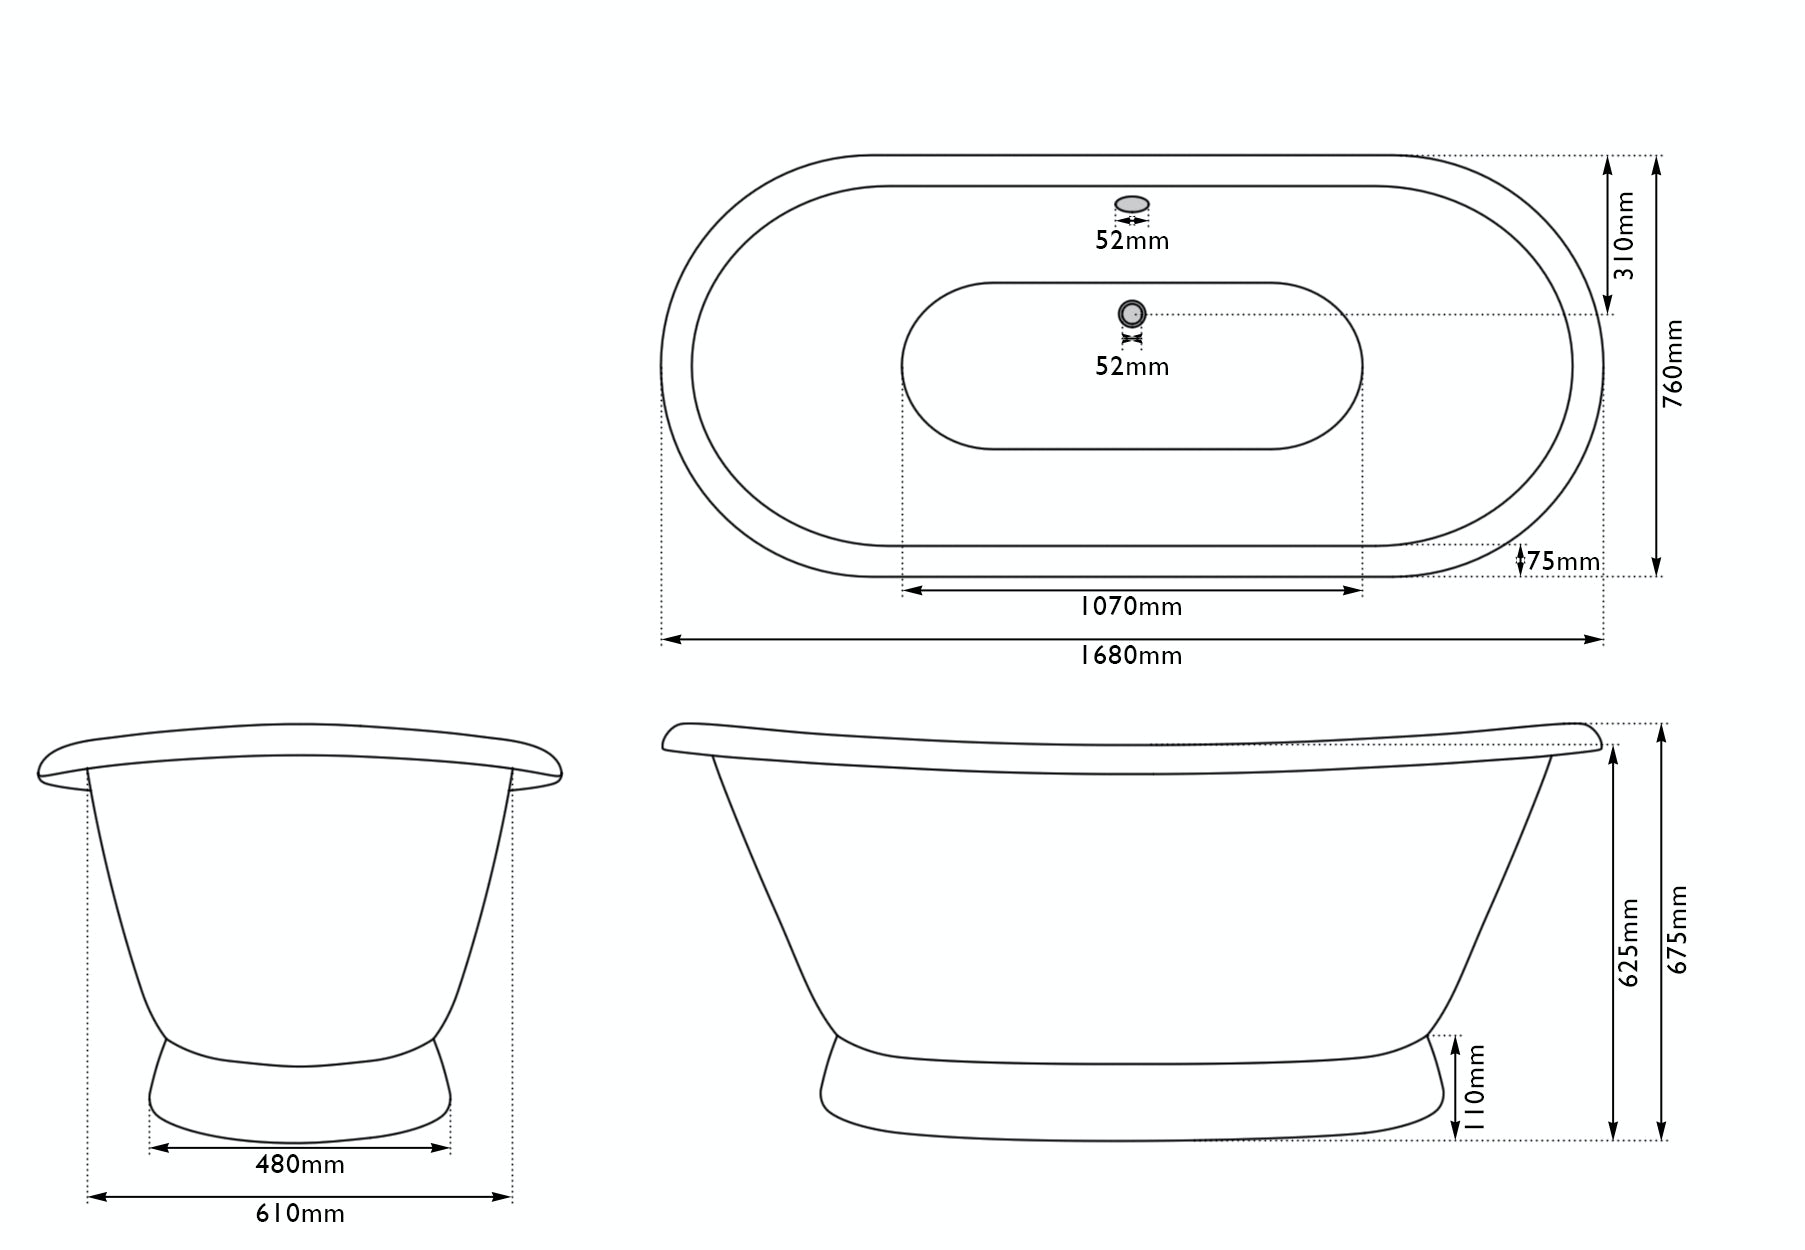 Dimensions for The Bath Co. Stirling polished cast iron bath